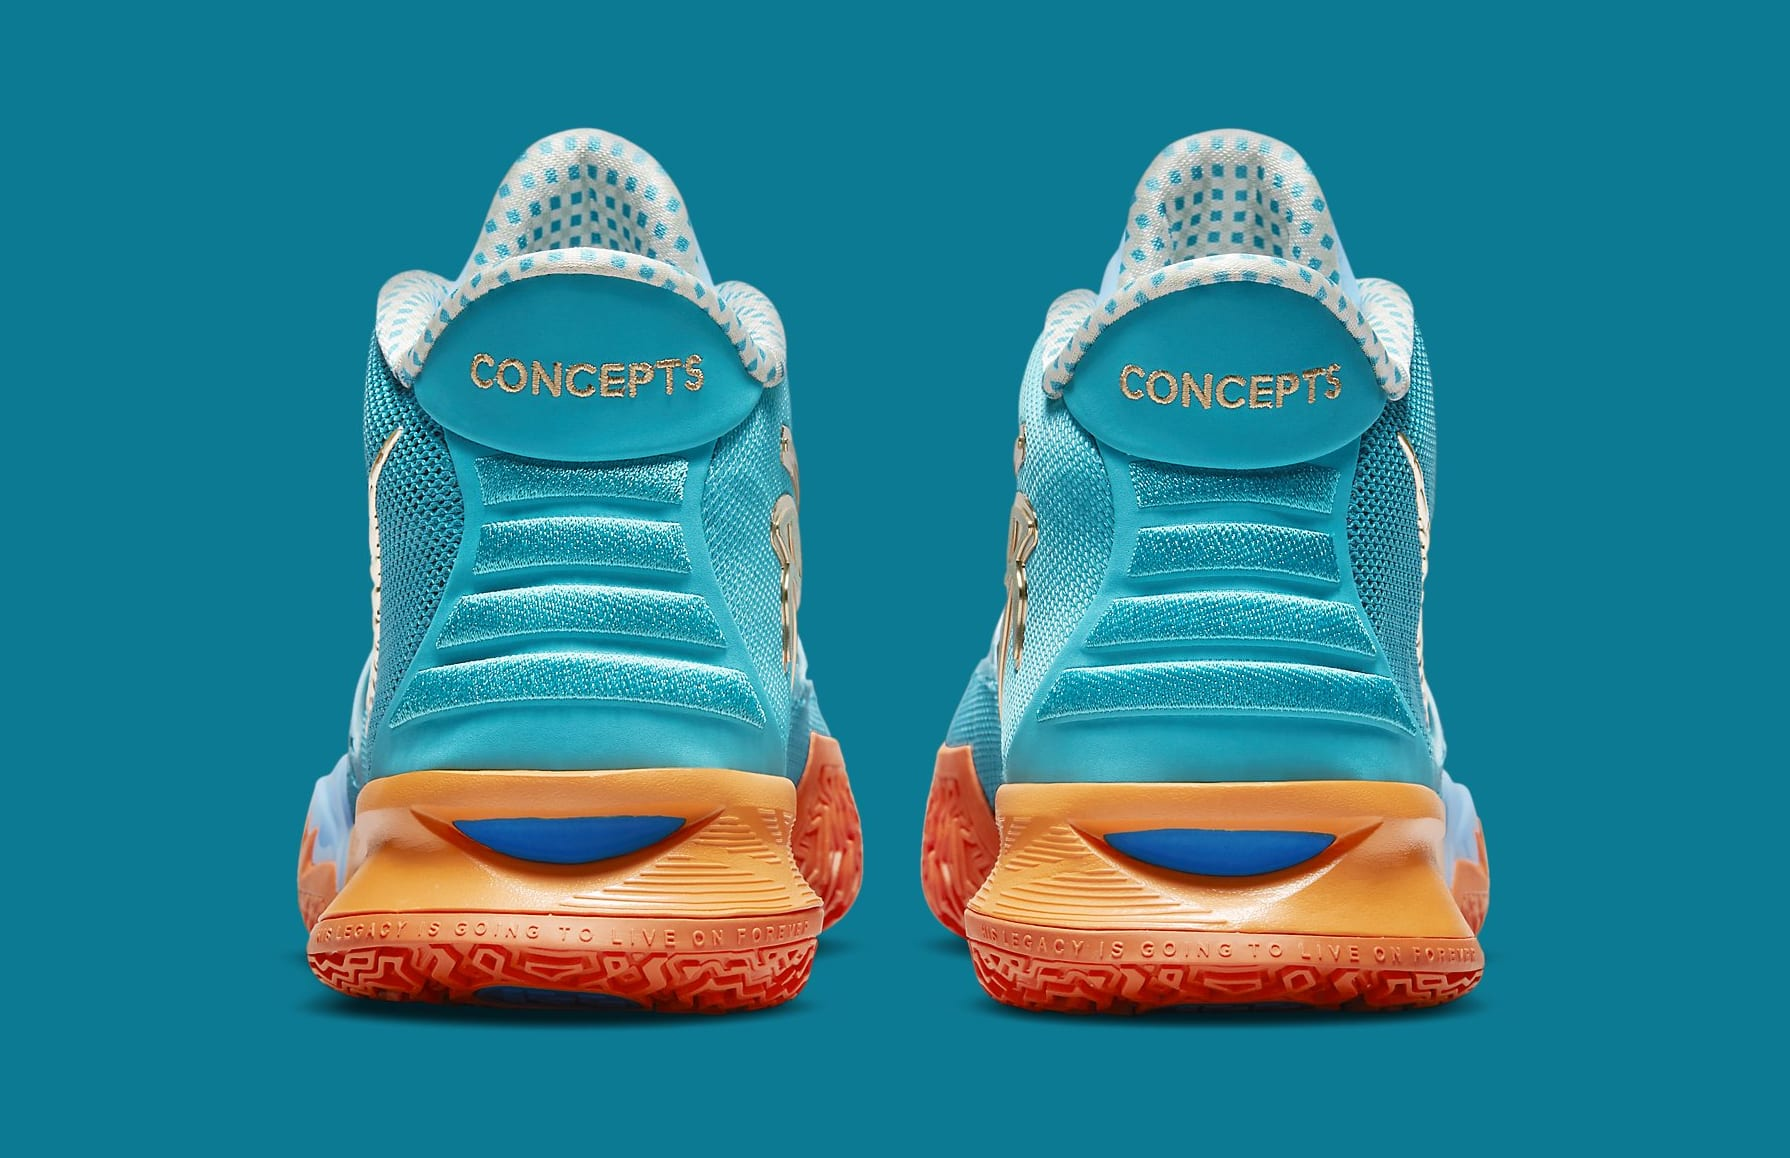 Concepts x Nike Kyrie 7 CT1137-900 Heel